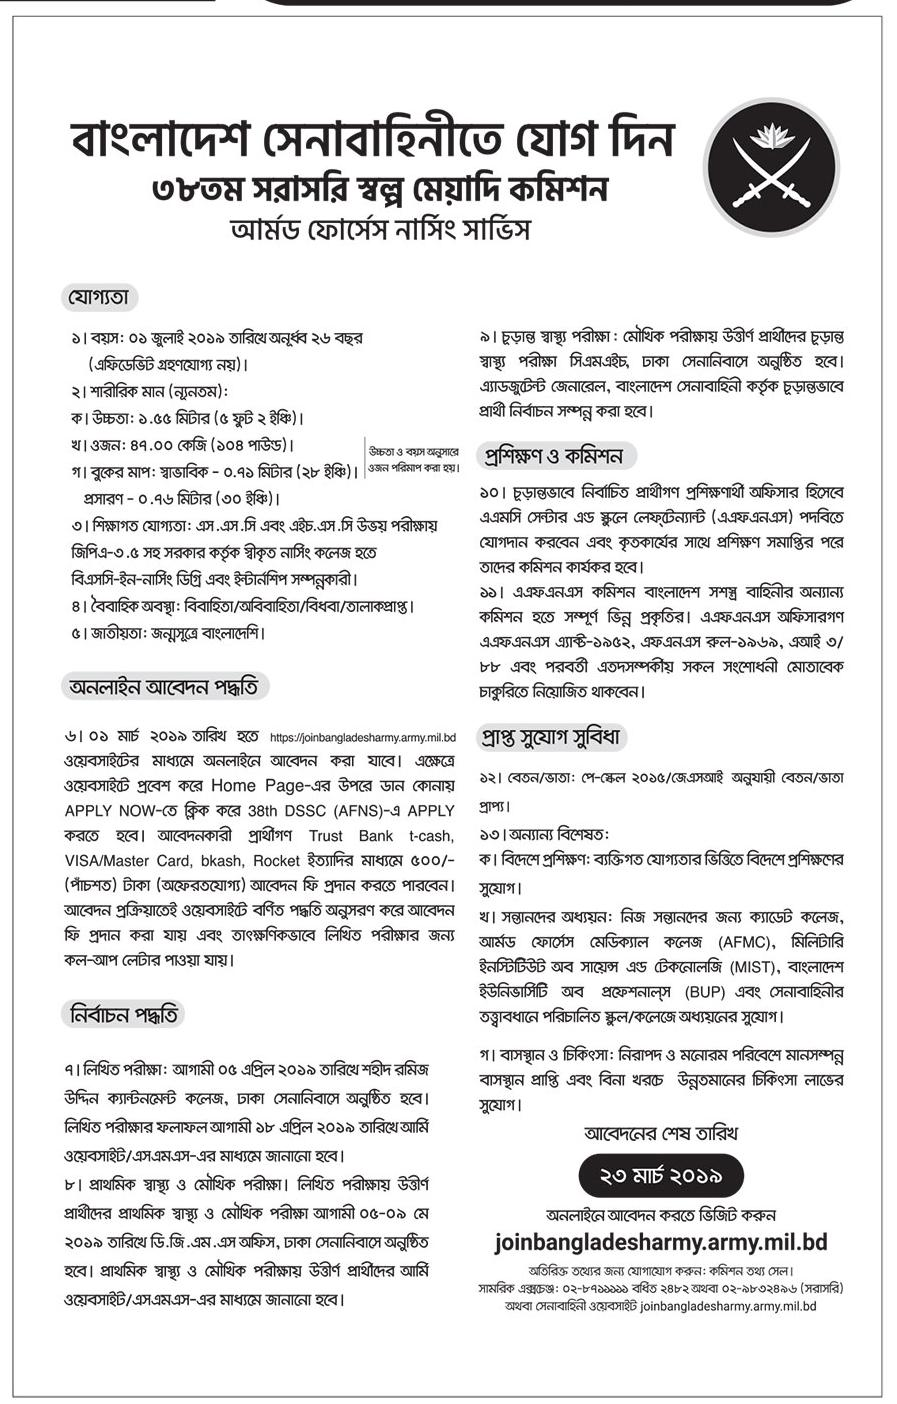 Bangladesh Army 38th AFNS Nurse Recruitment Circular 2019